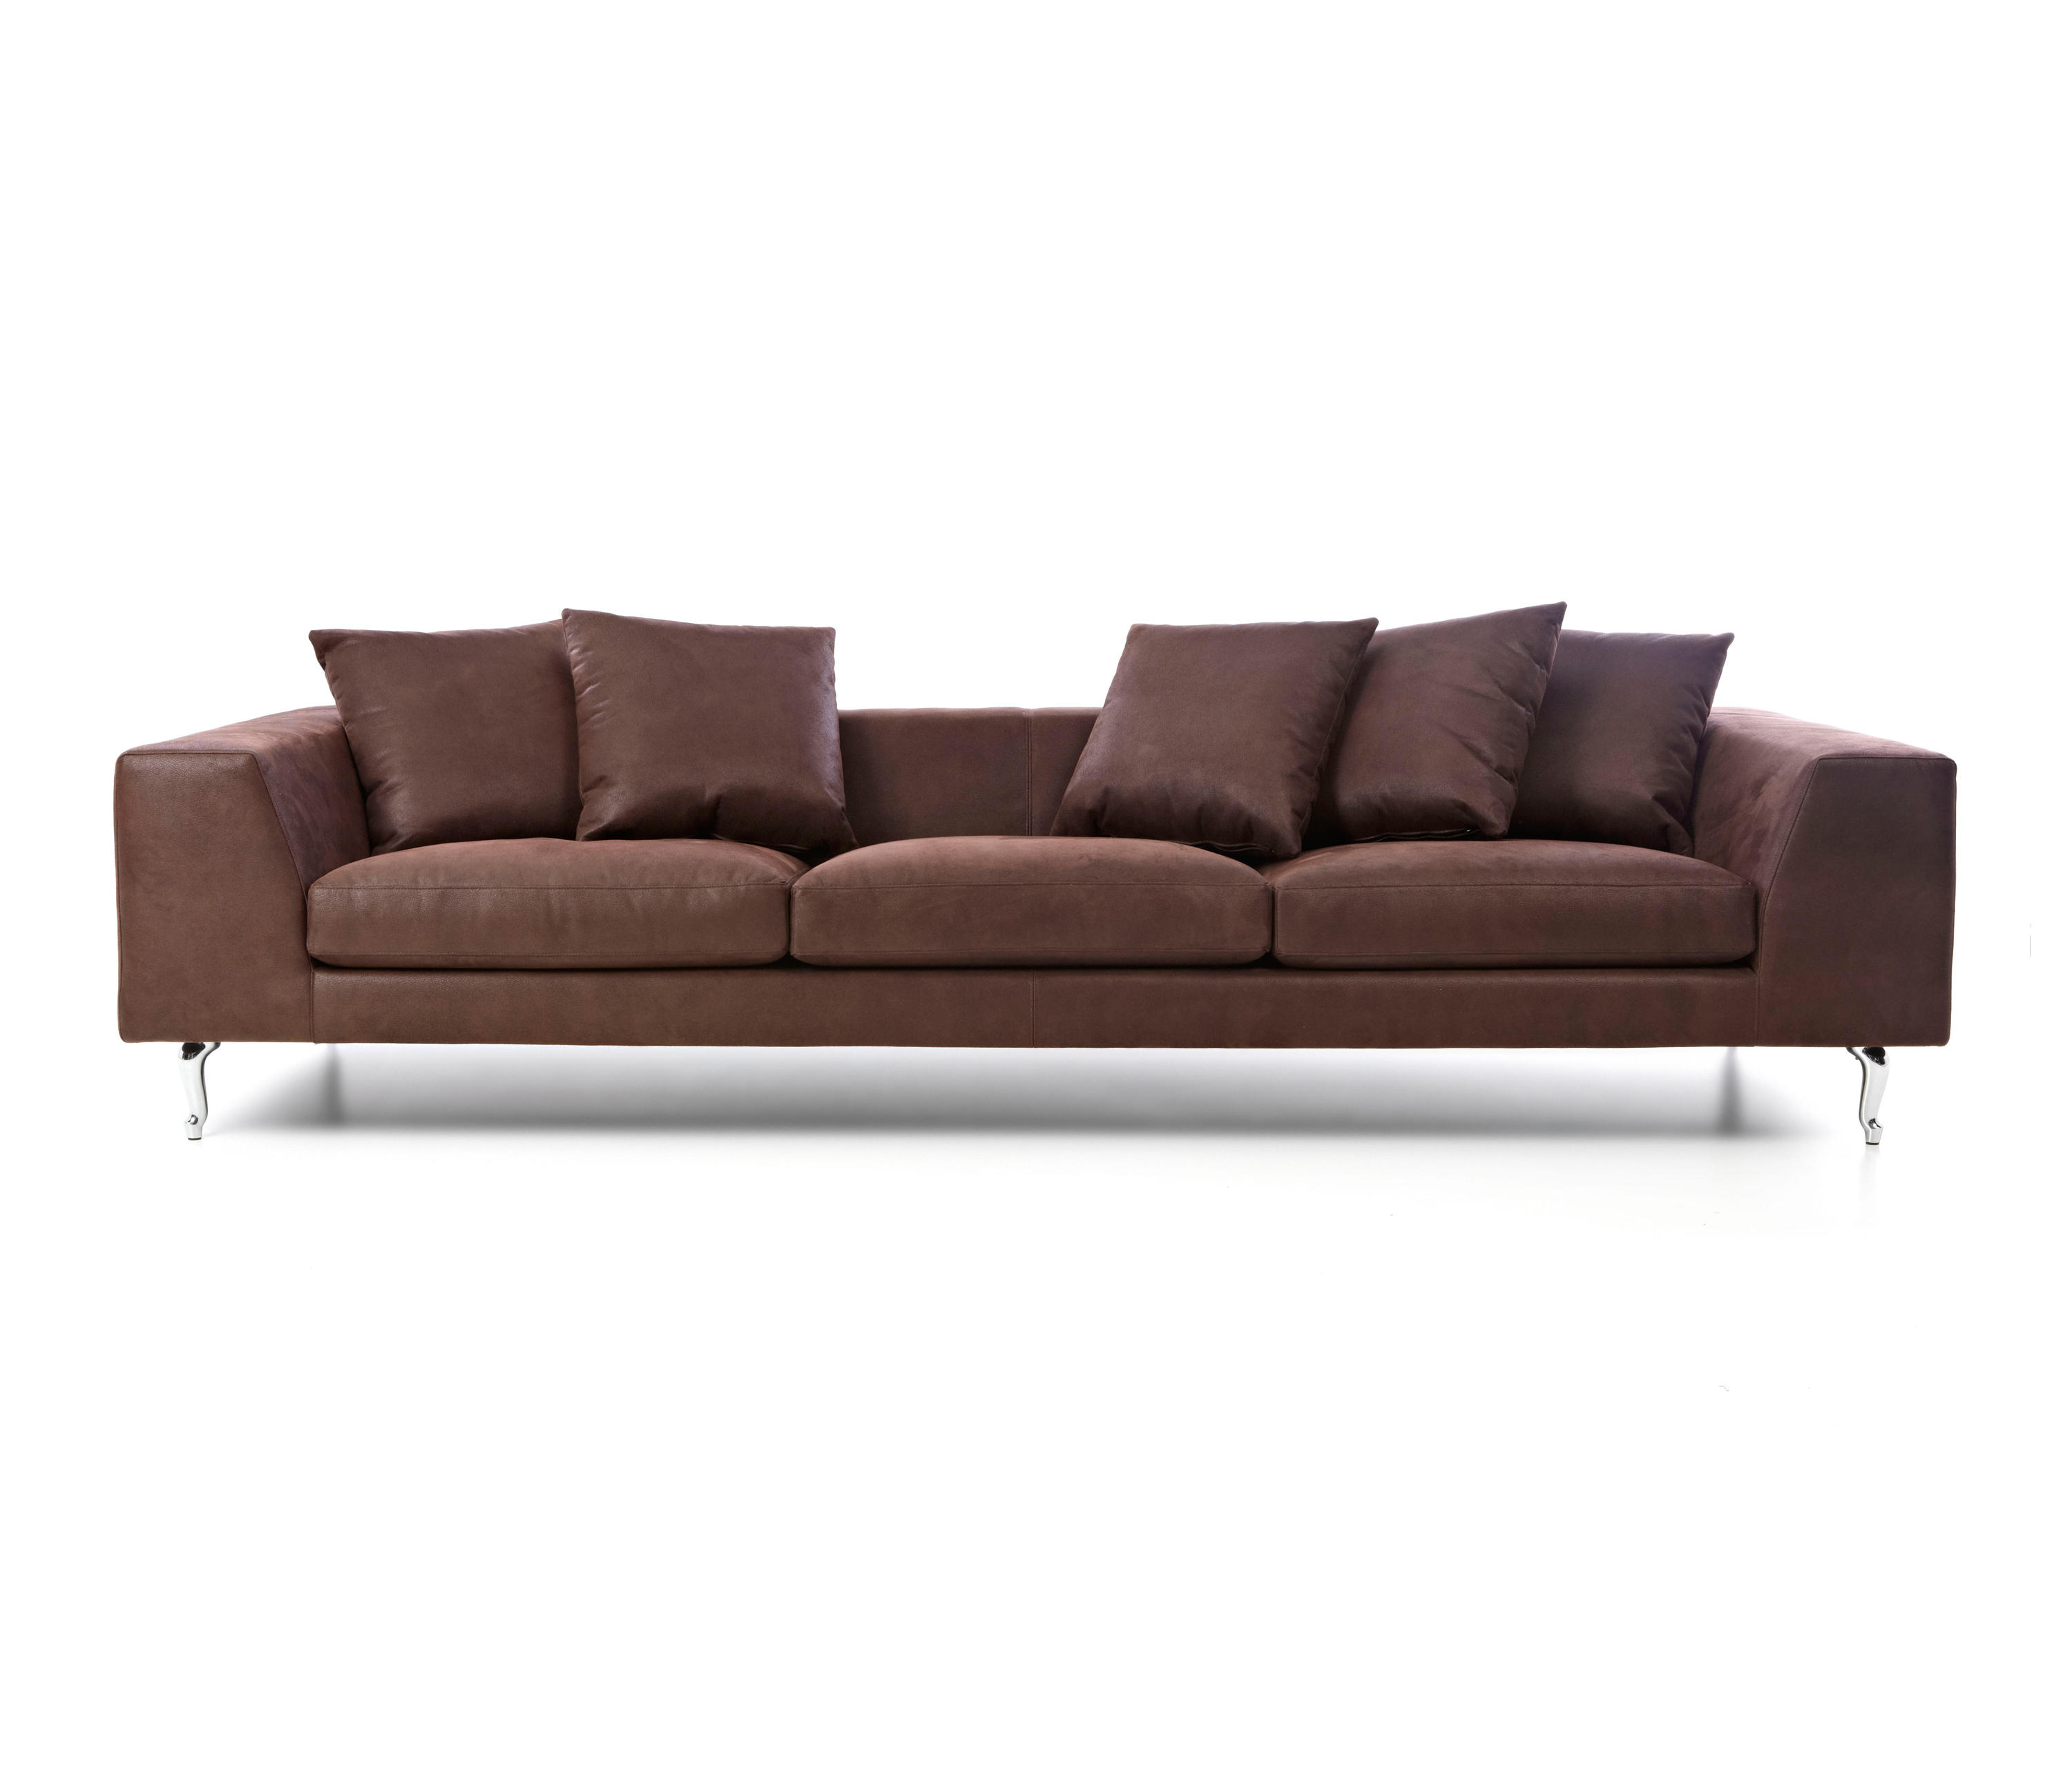 Zliq Sofa By Moooi Sofas